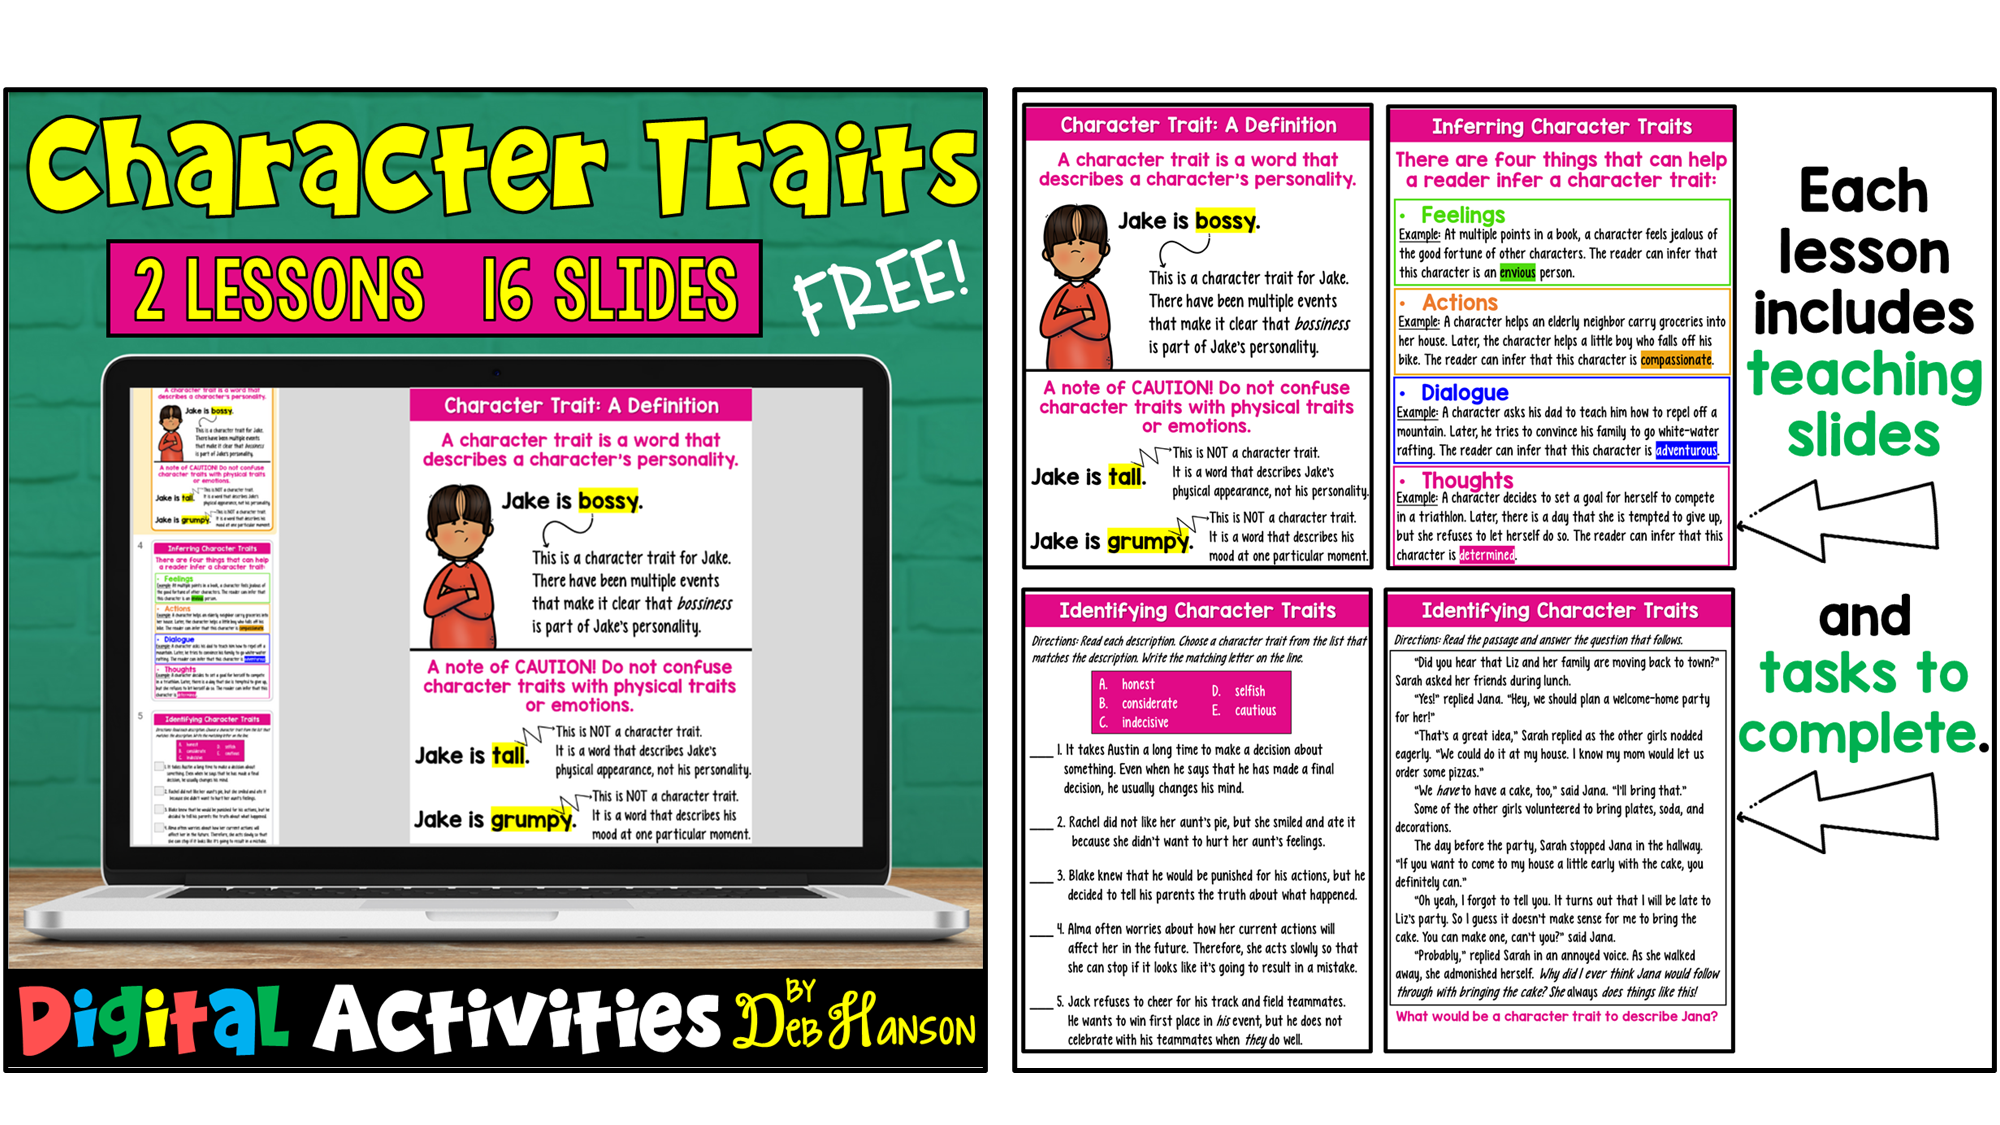 Check out  my free teach-and-task character traits lessons. It is digital and compatible with Google Slides. It includes both instructional slides and student practice slides!